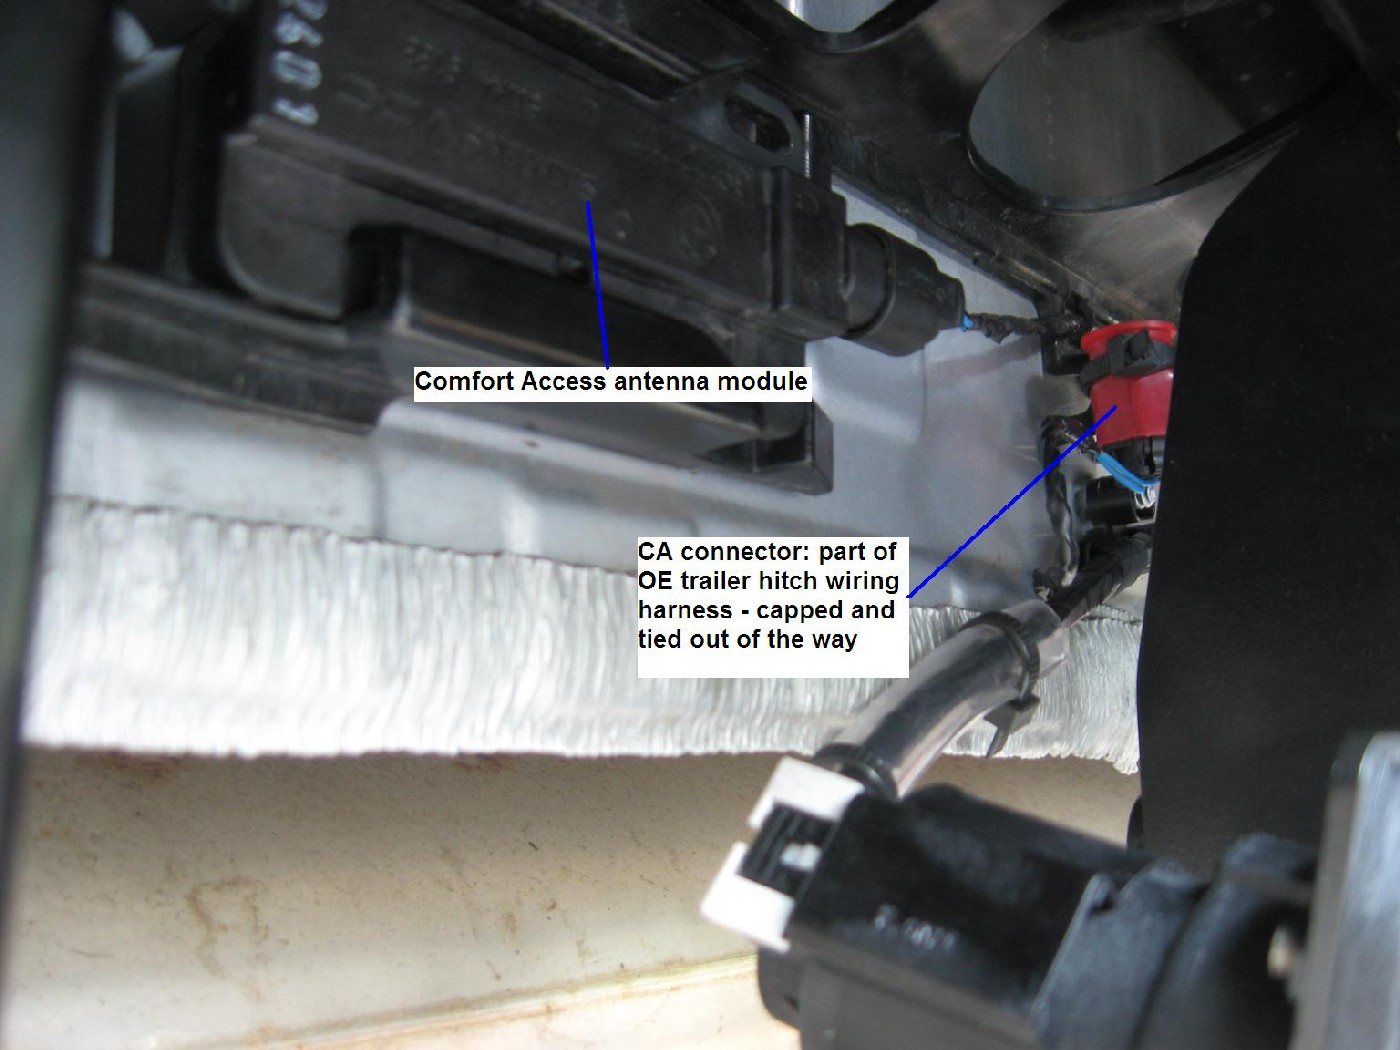 Part 1 Need Help With E70 Lci Trailer Hitch Wiring Installation